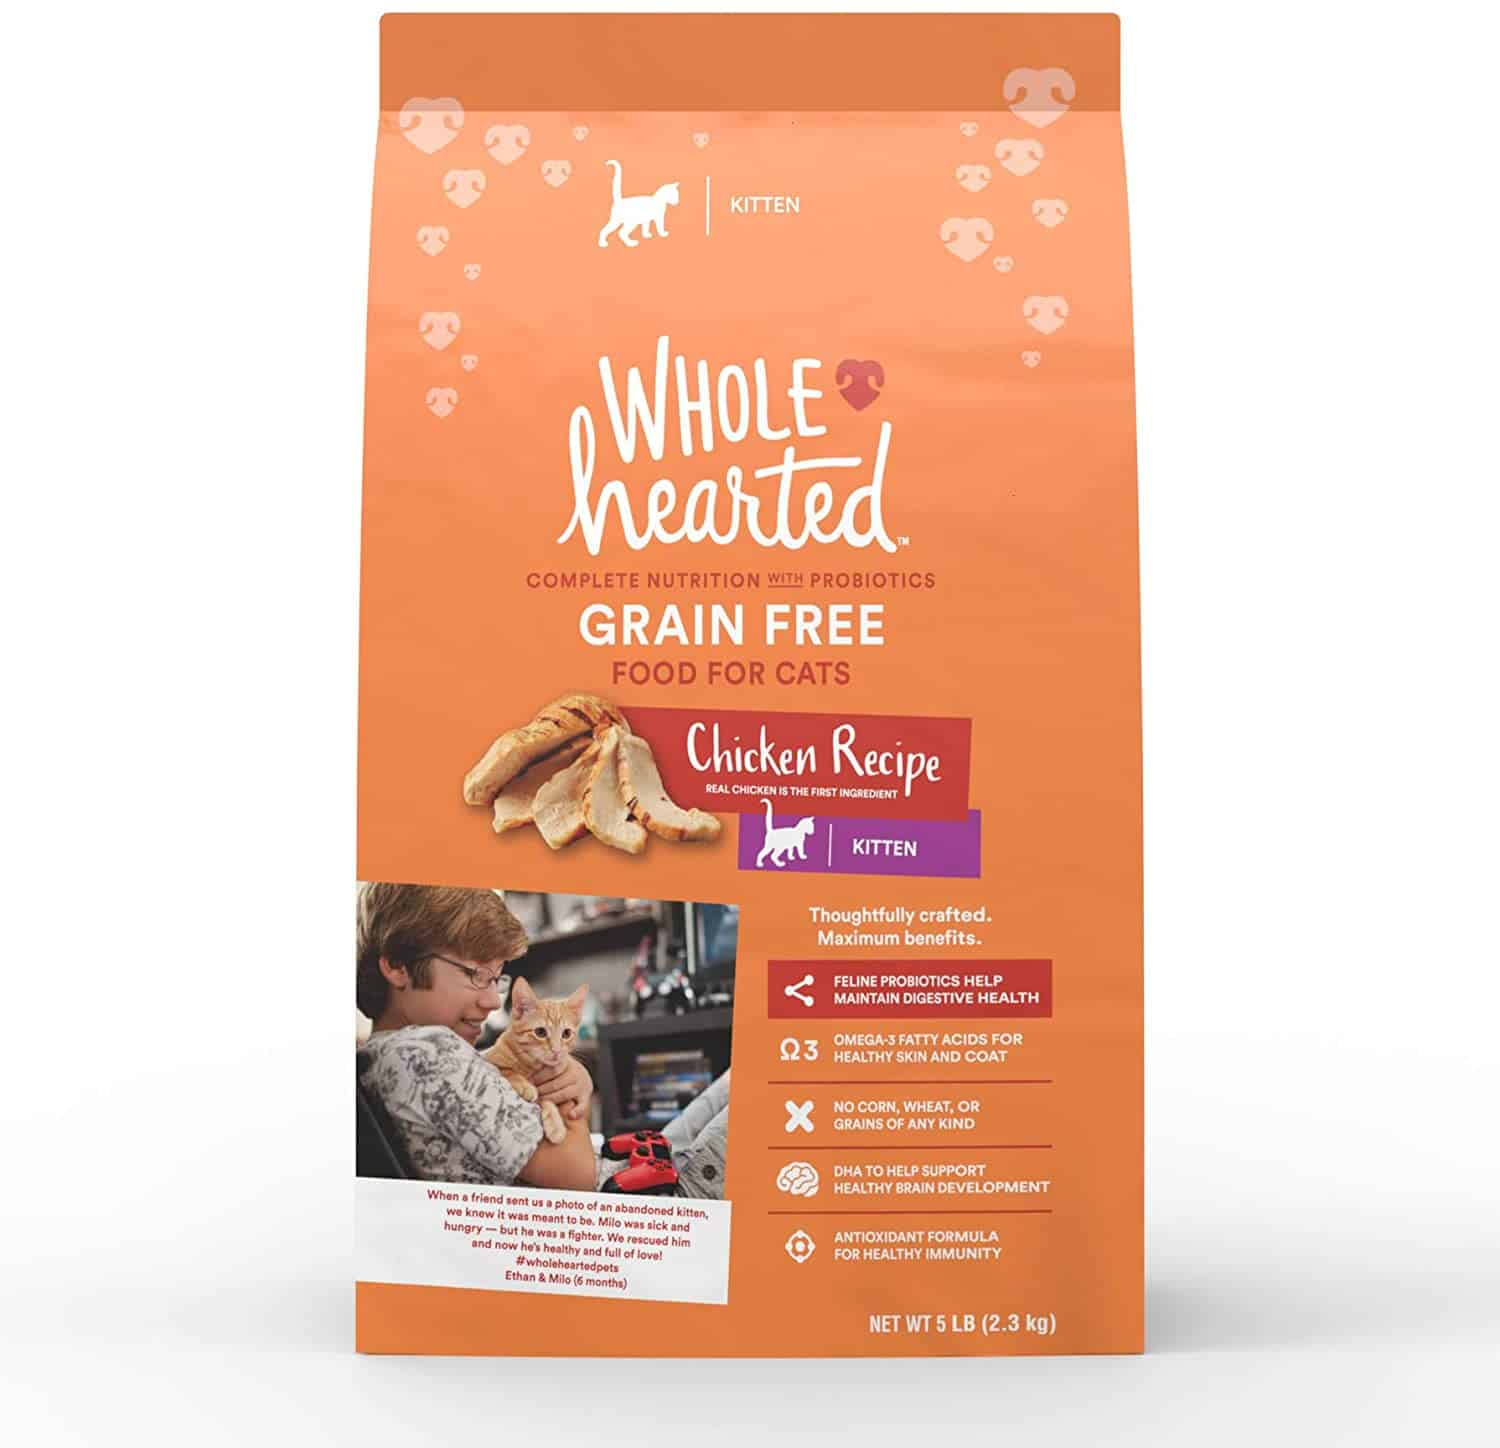 WholeHearted Cat Food Review 2021: Good Quality, Affordable Cat Food 2